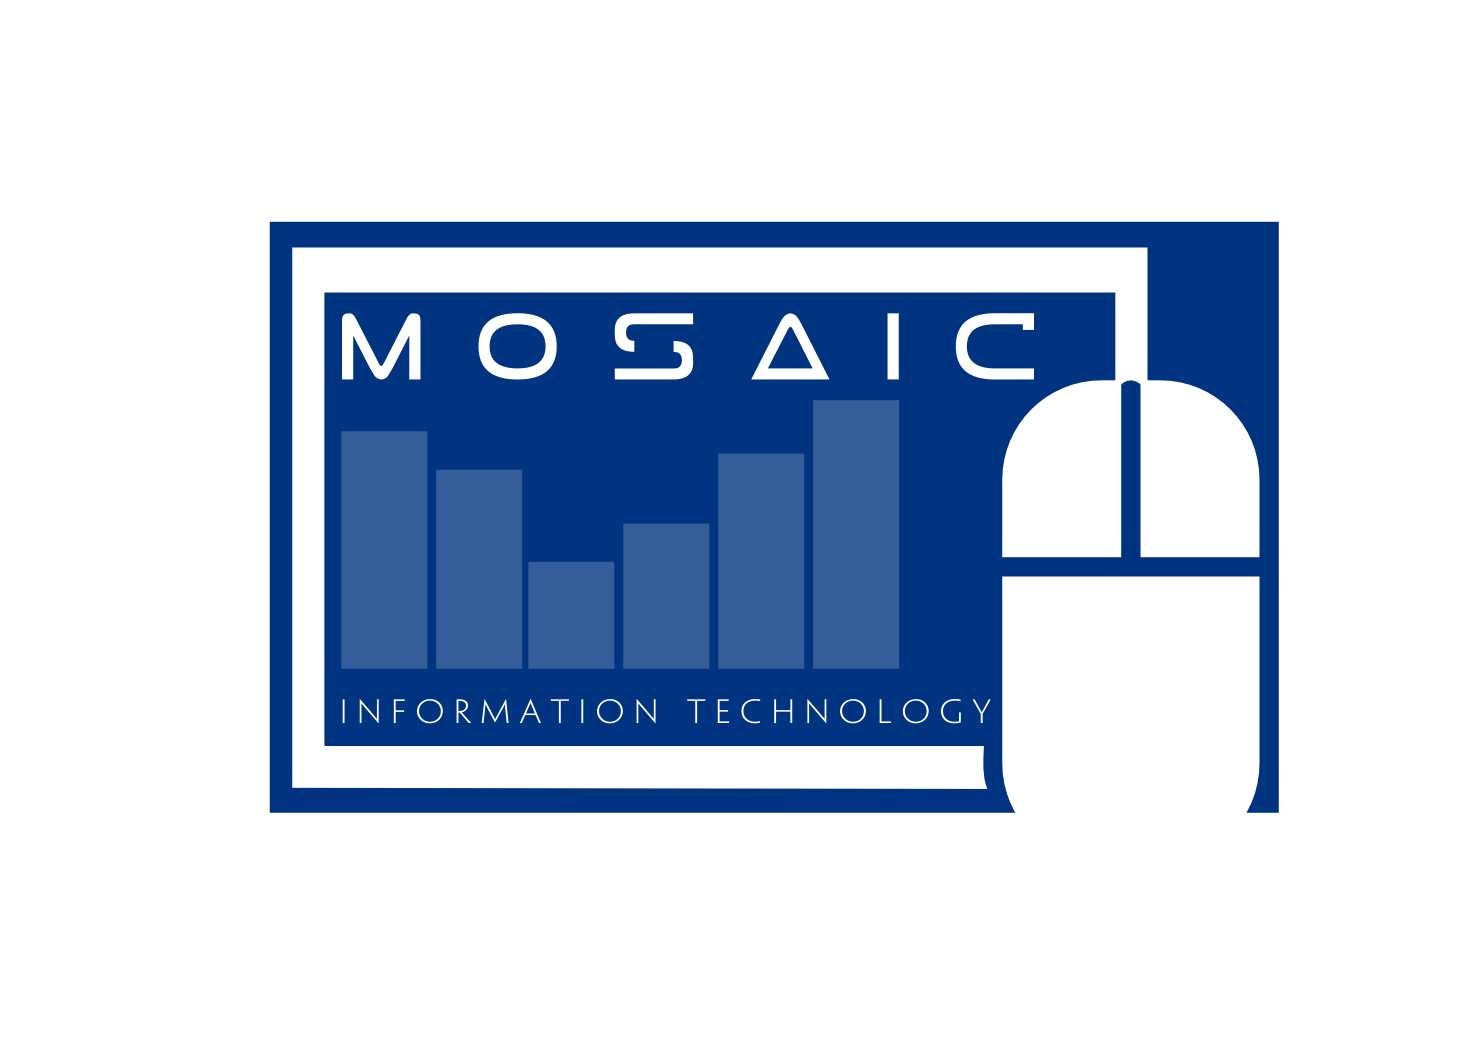 Logo Design by whoosef - Entry No. 54 in the Logo Design Contest Mosaic Information Technology Logo Design.